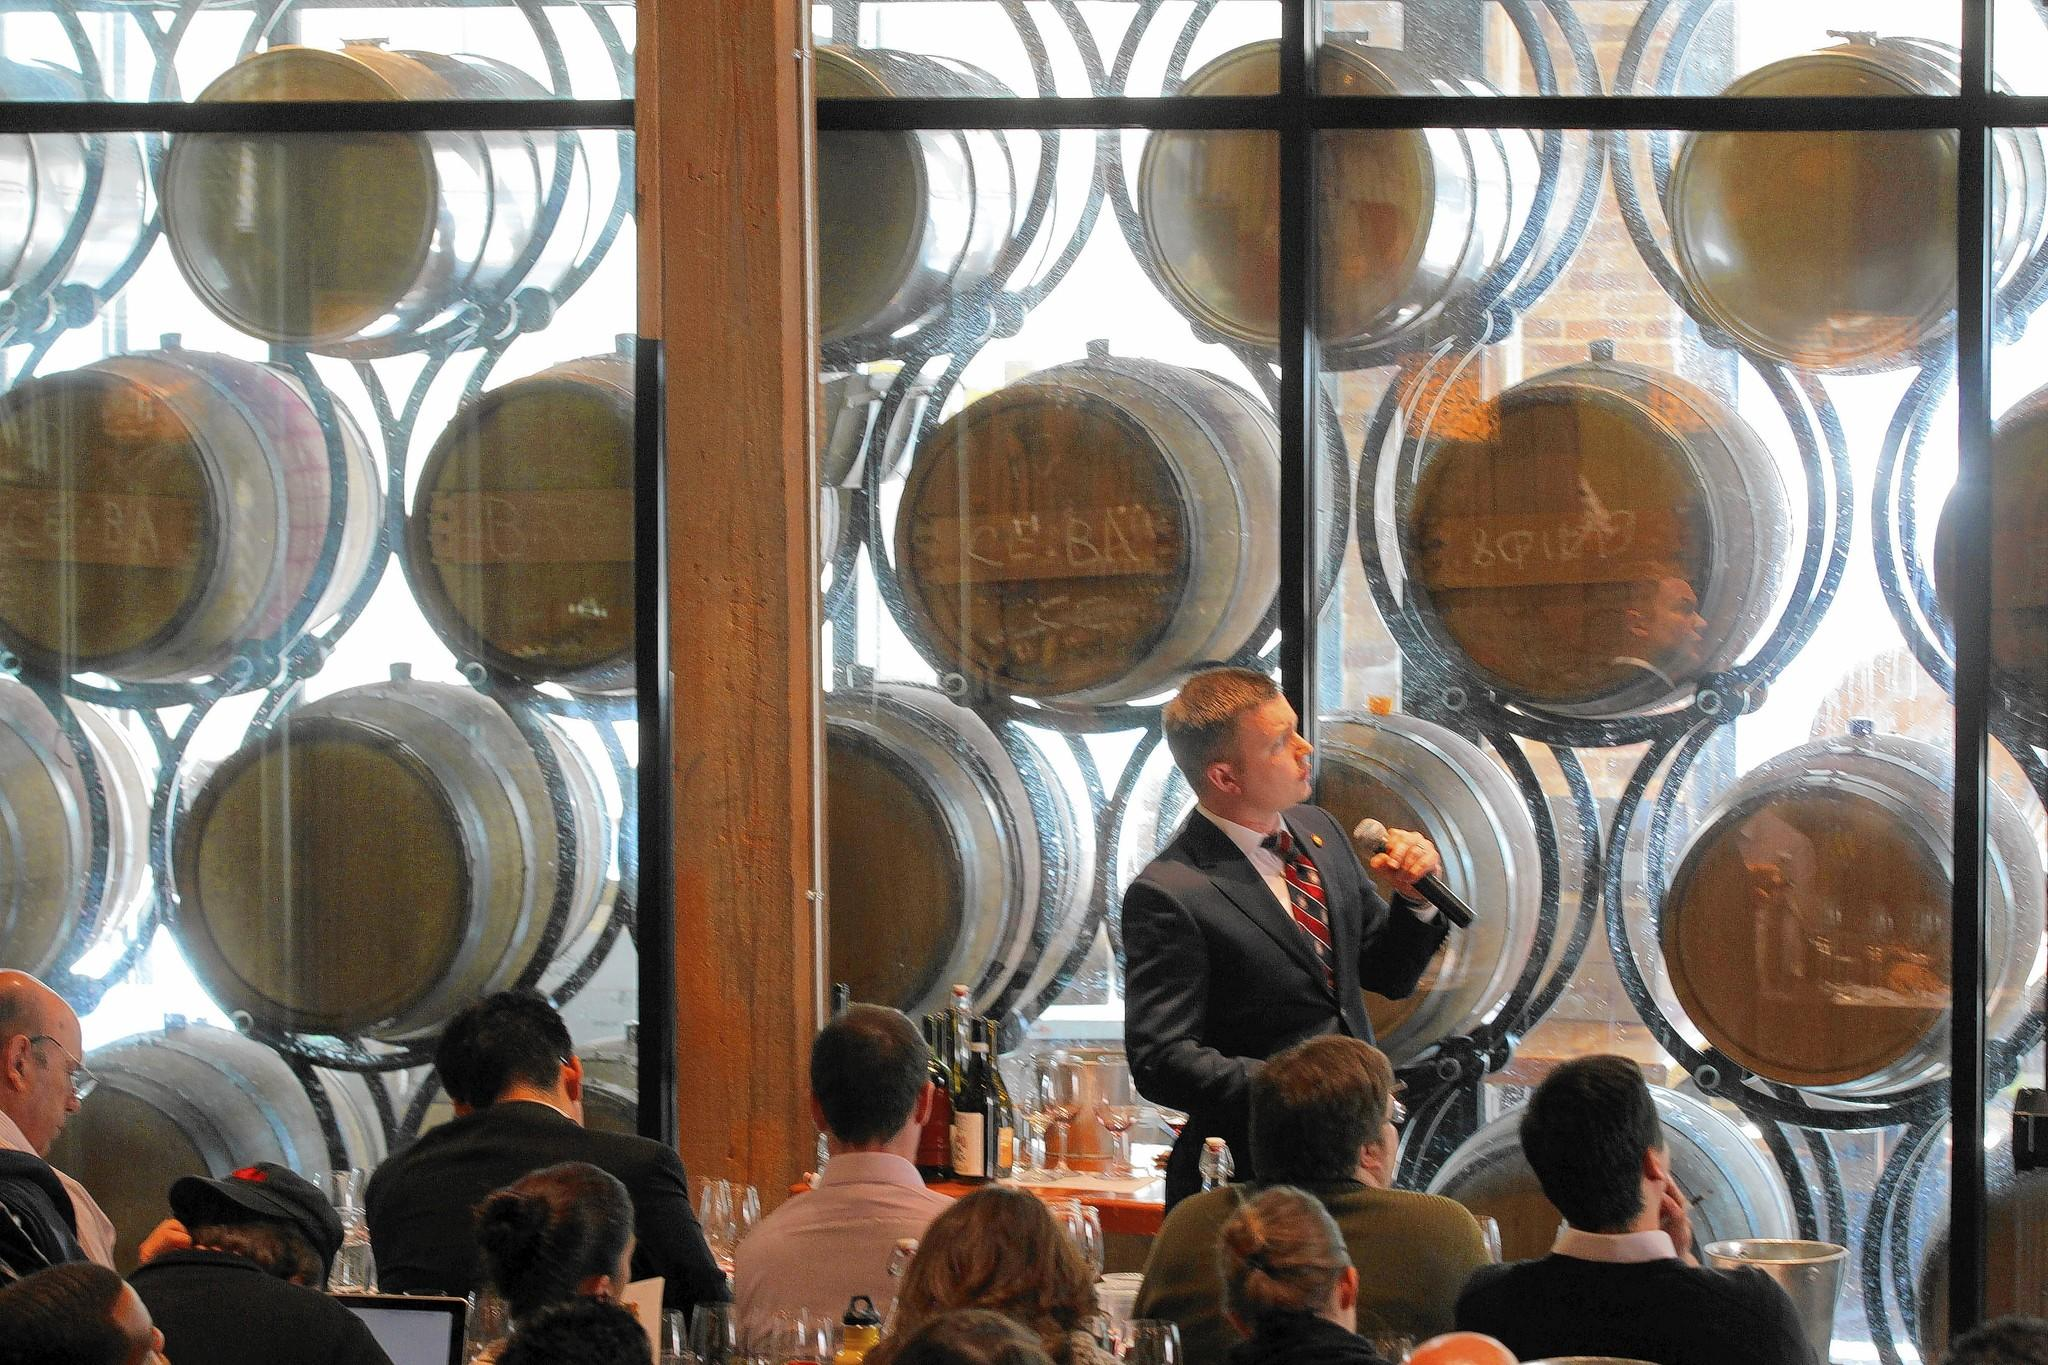 Master Sommelier Jesse Becker lectures at a Master Sommelier course/ exam at City Winery, Chicago.